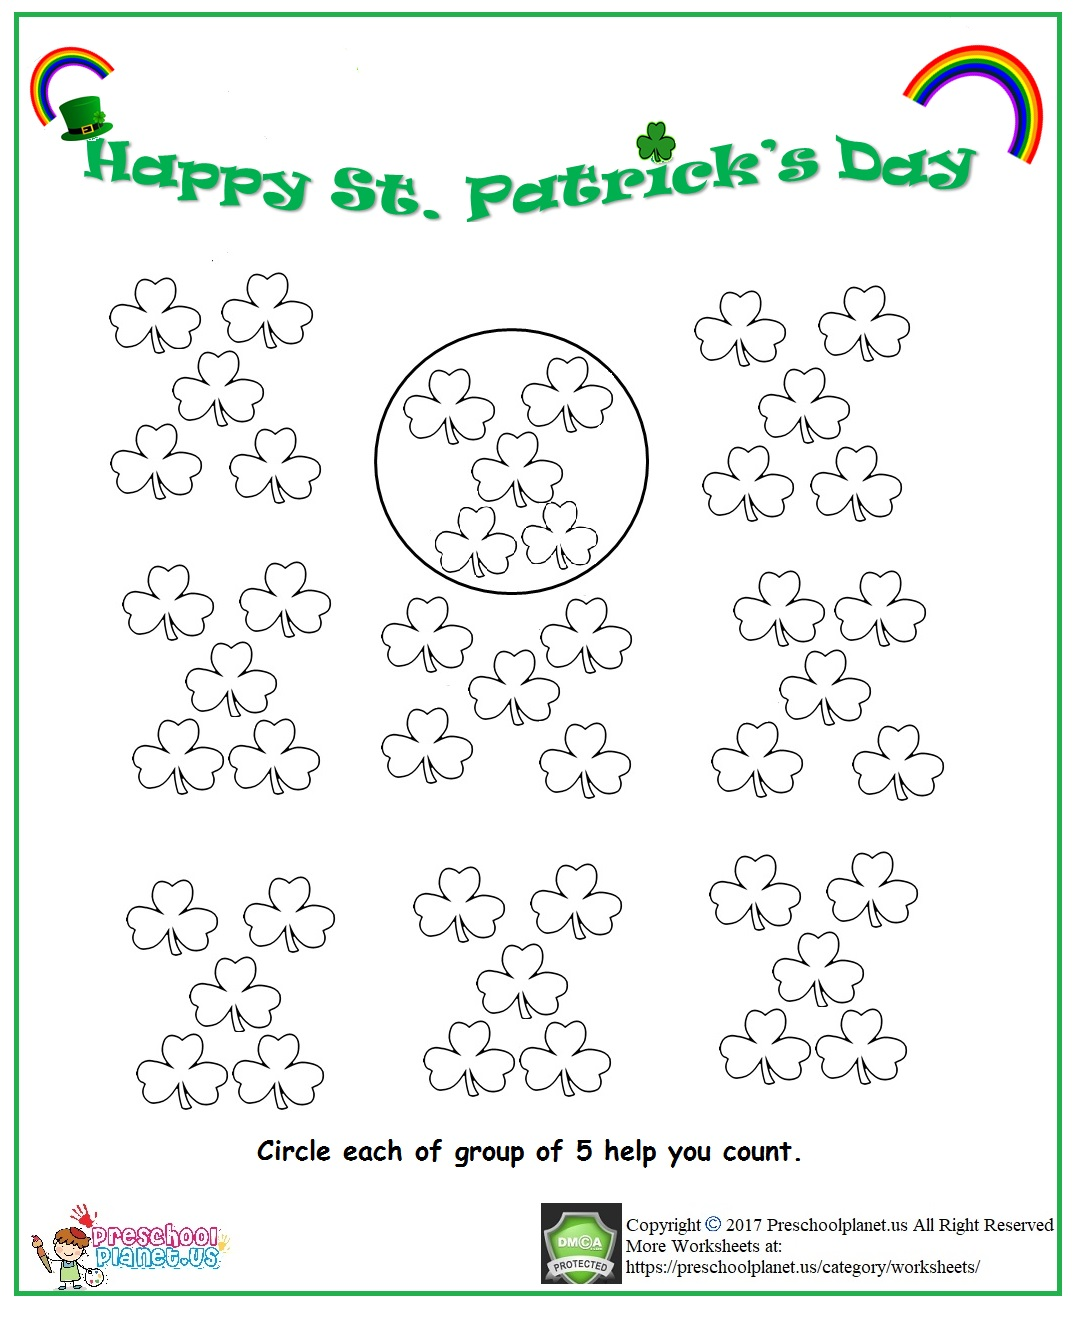 St. Patrick's day grouping worksheet